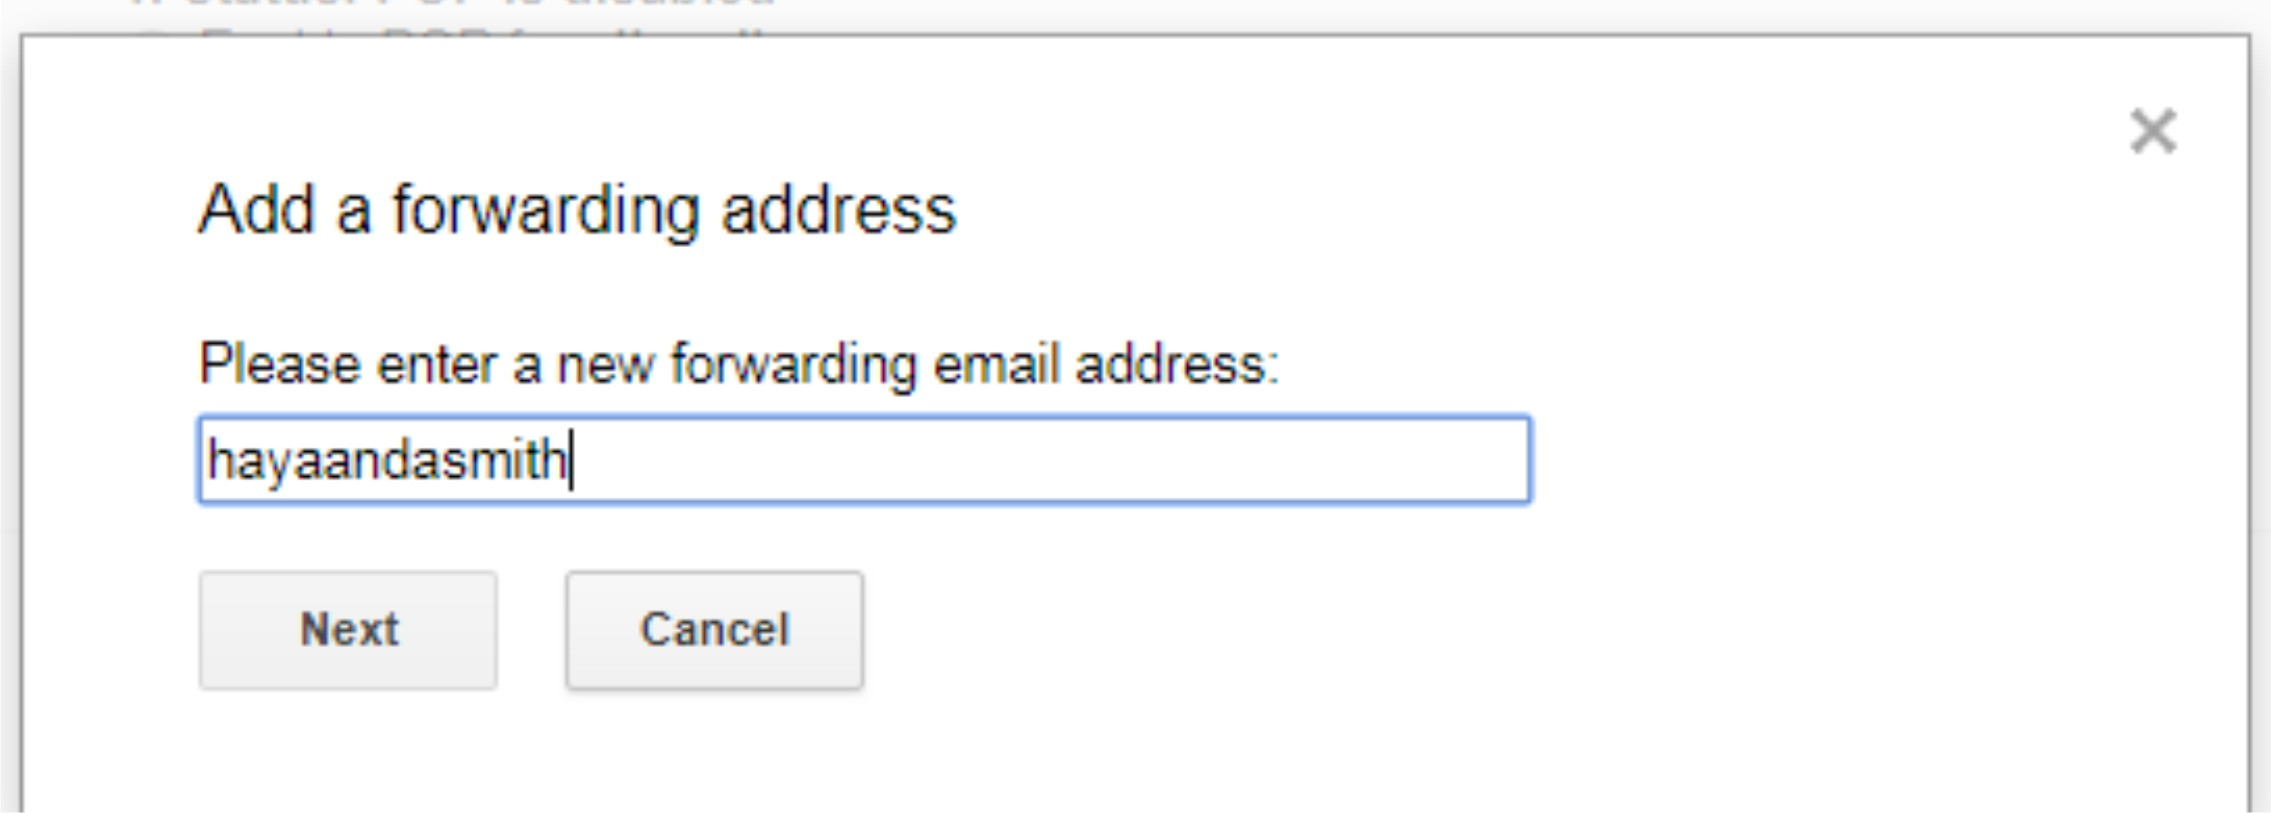 how to automatically forward emails in gmail